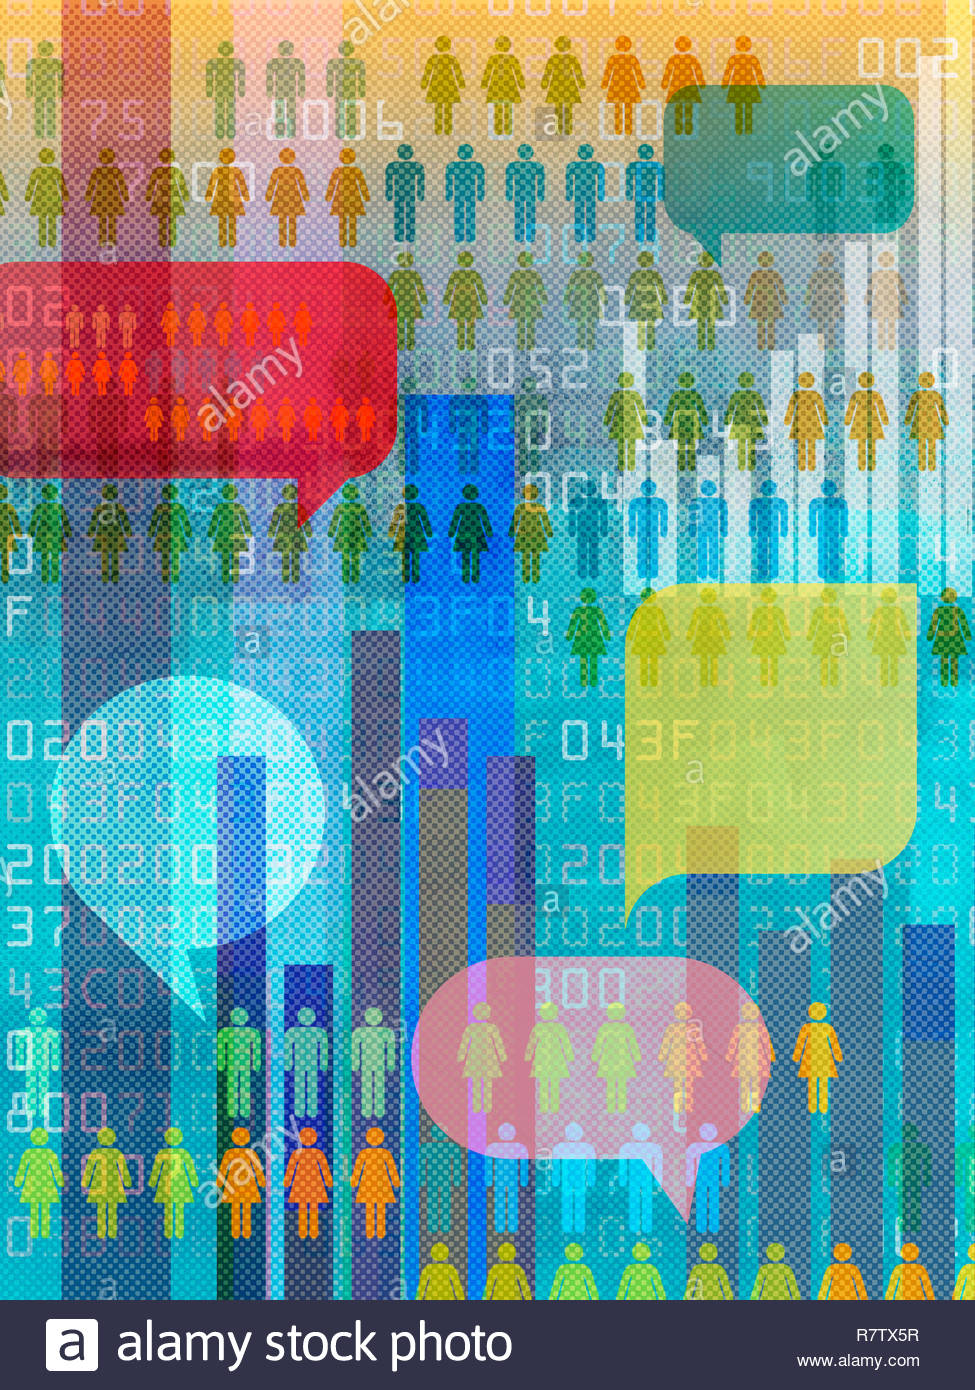 Data and communications collage Stock Photo